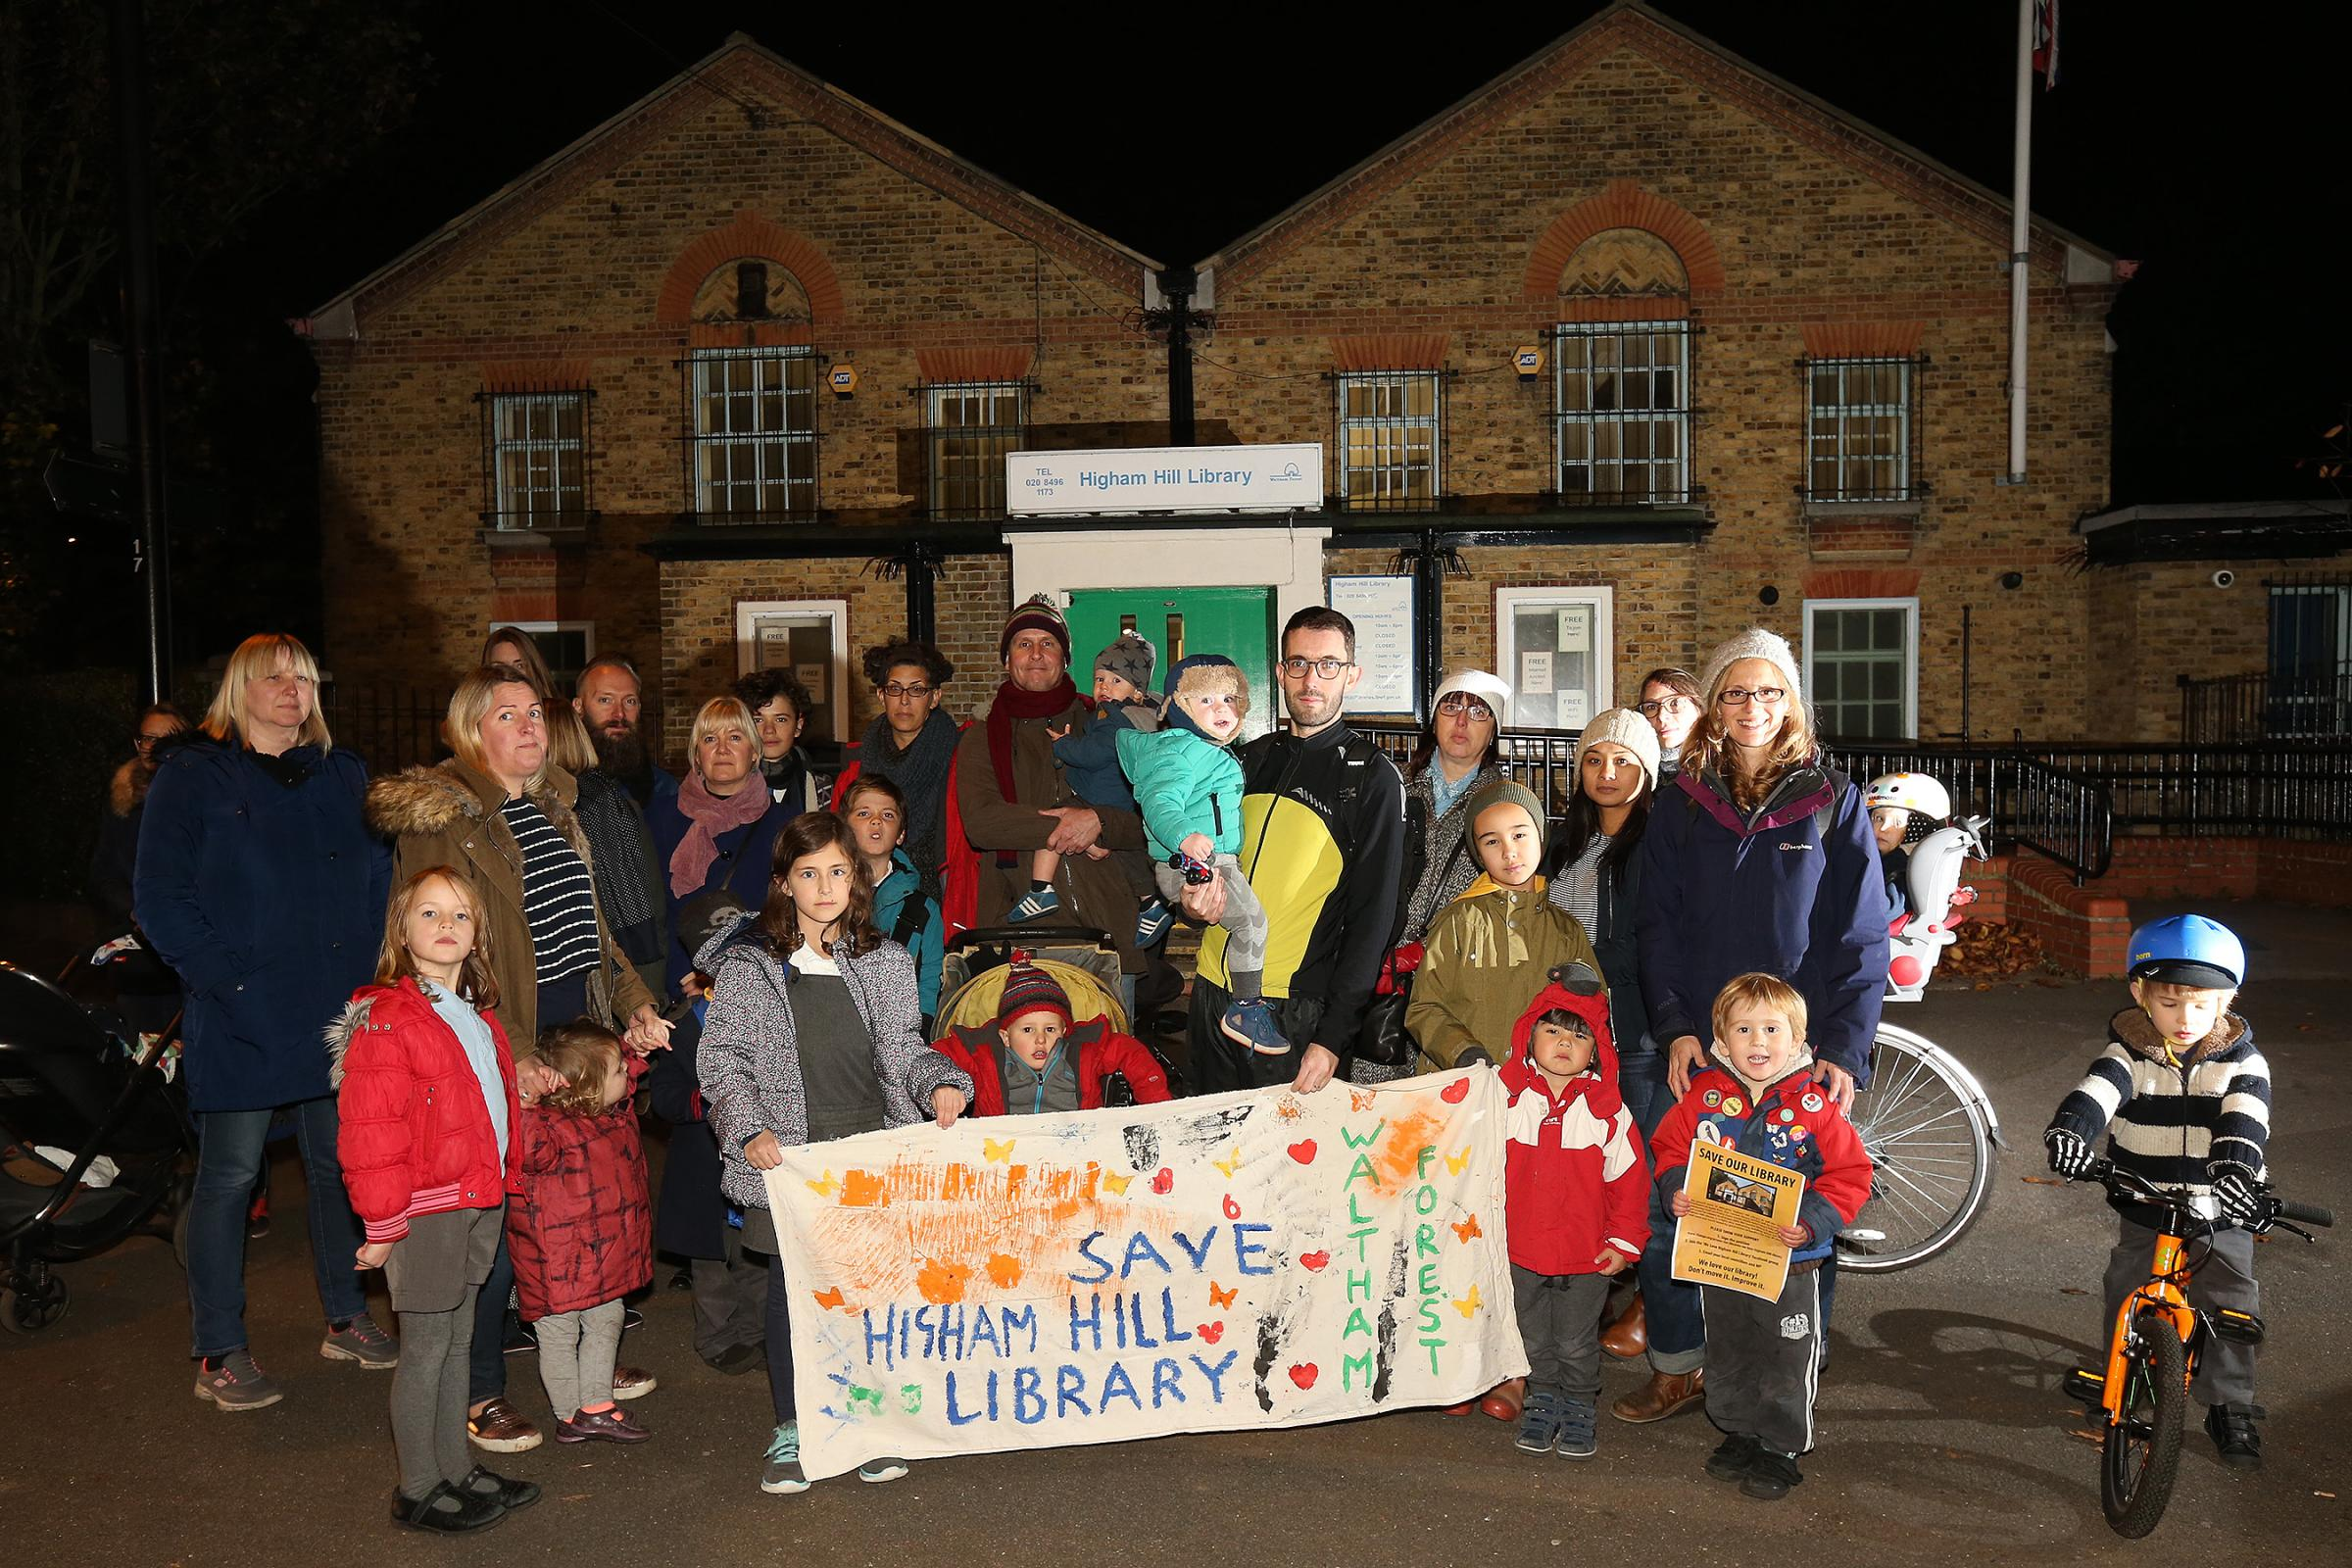 Higham Hill residents had been campaigning to keep their library open